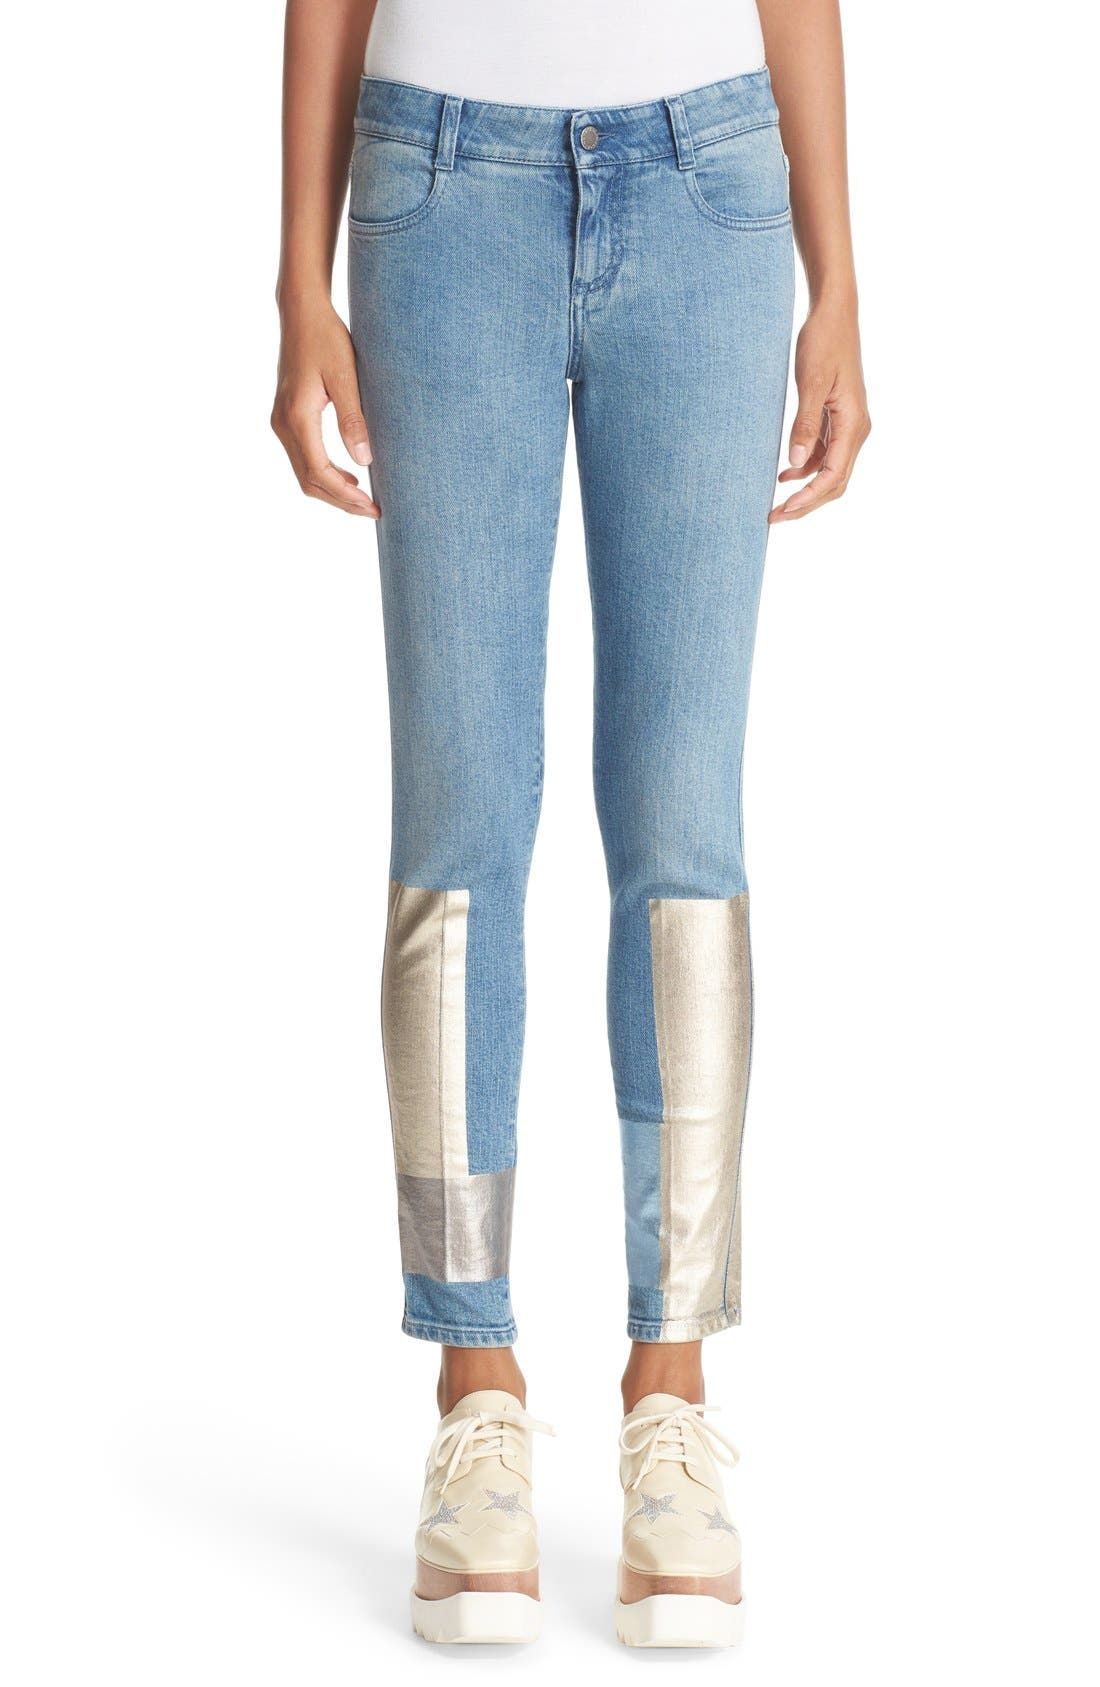 Alternate Image 1 Selected - Stella McCartney Ankle Grazer Skinny Jeans